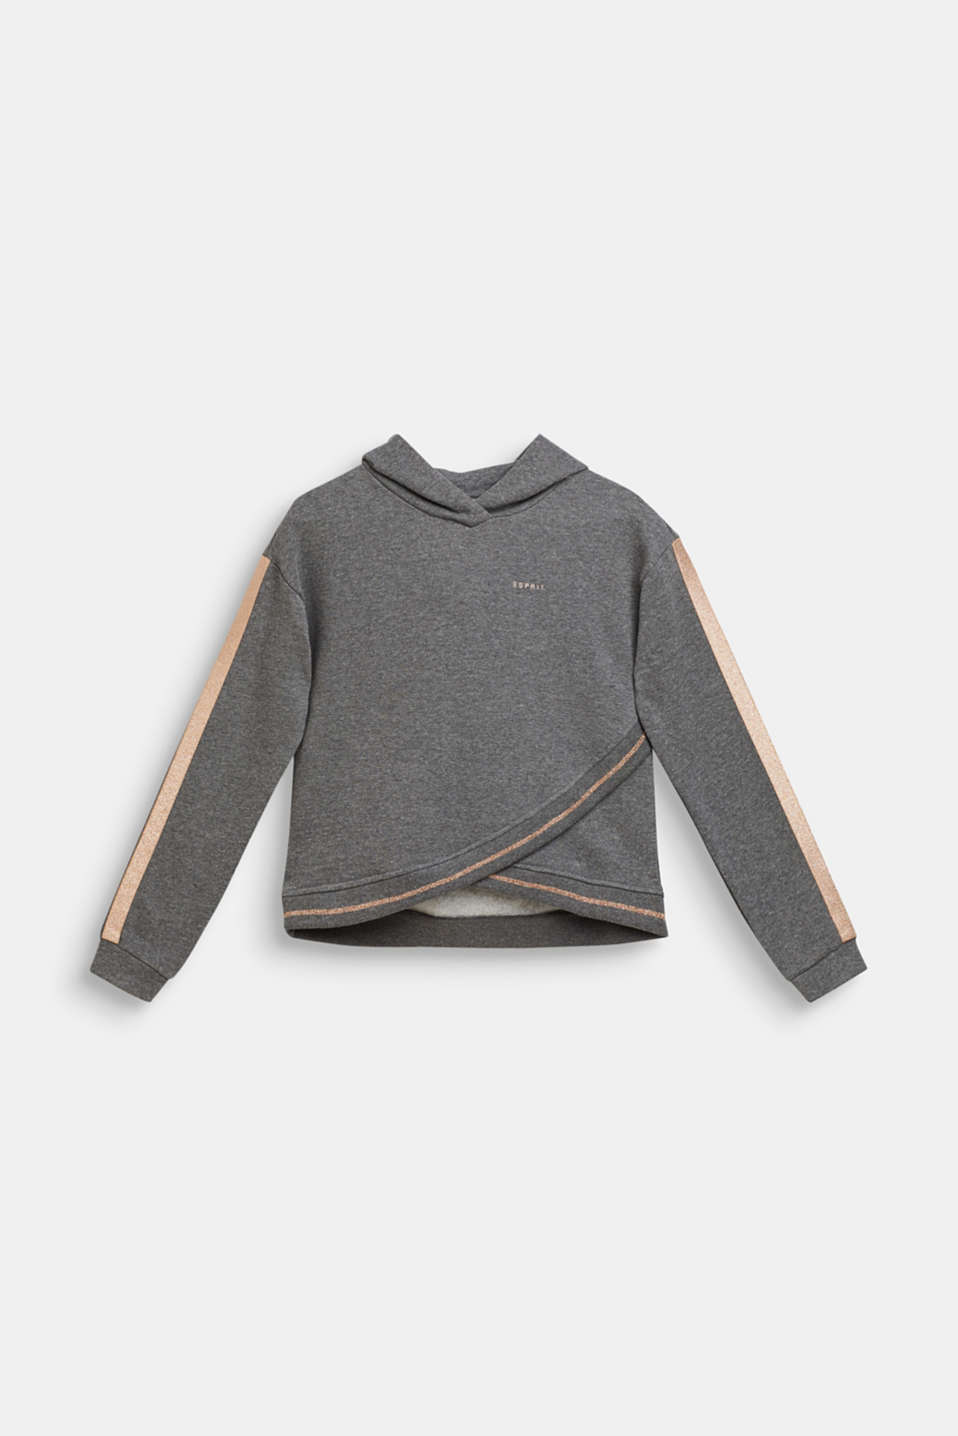 Esprit - Sweatshirt fabric hoodie with glitter details